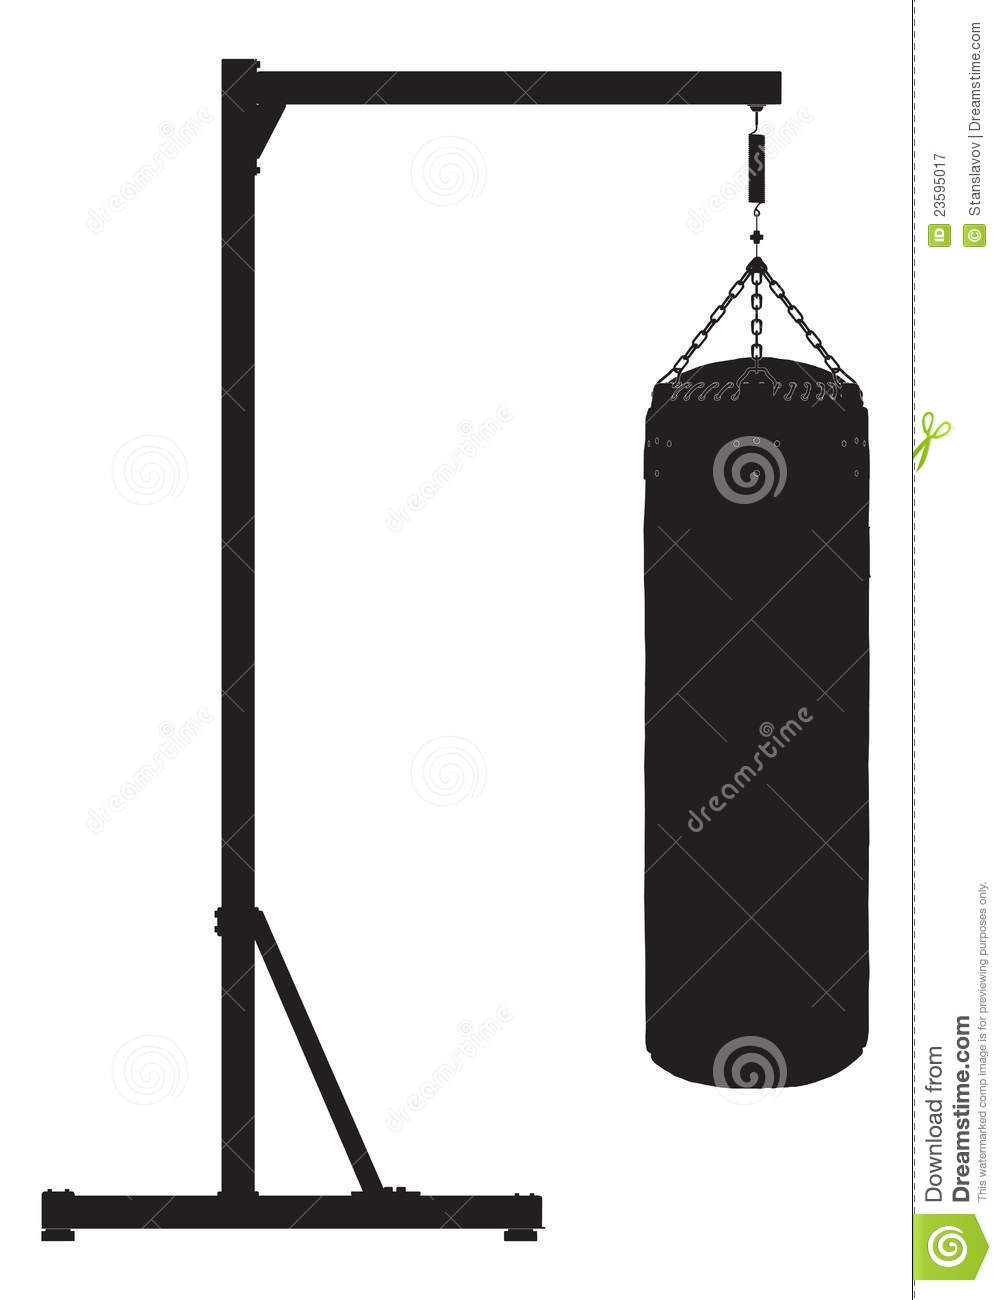 punching bag clipart - photo #13